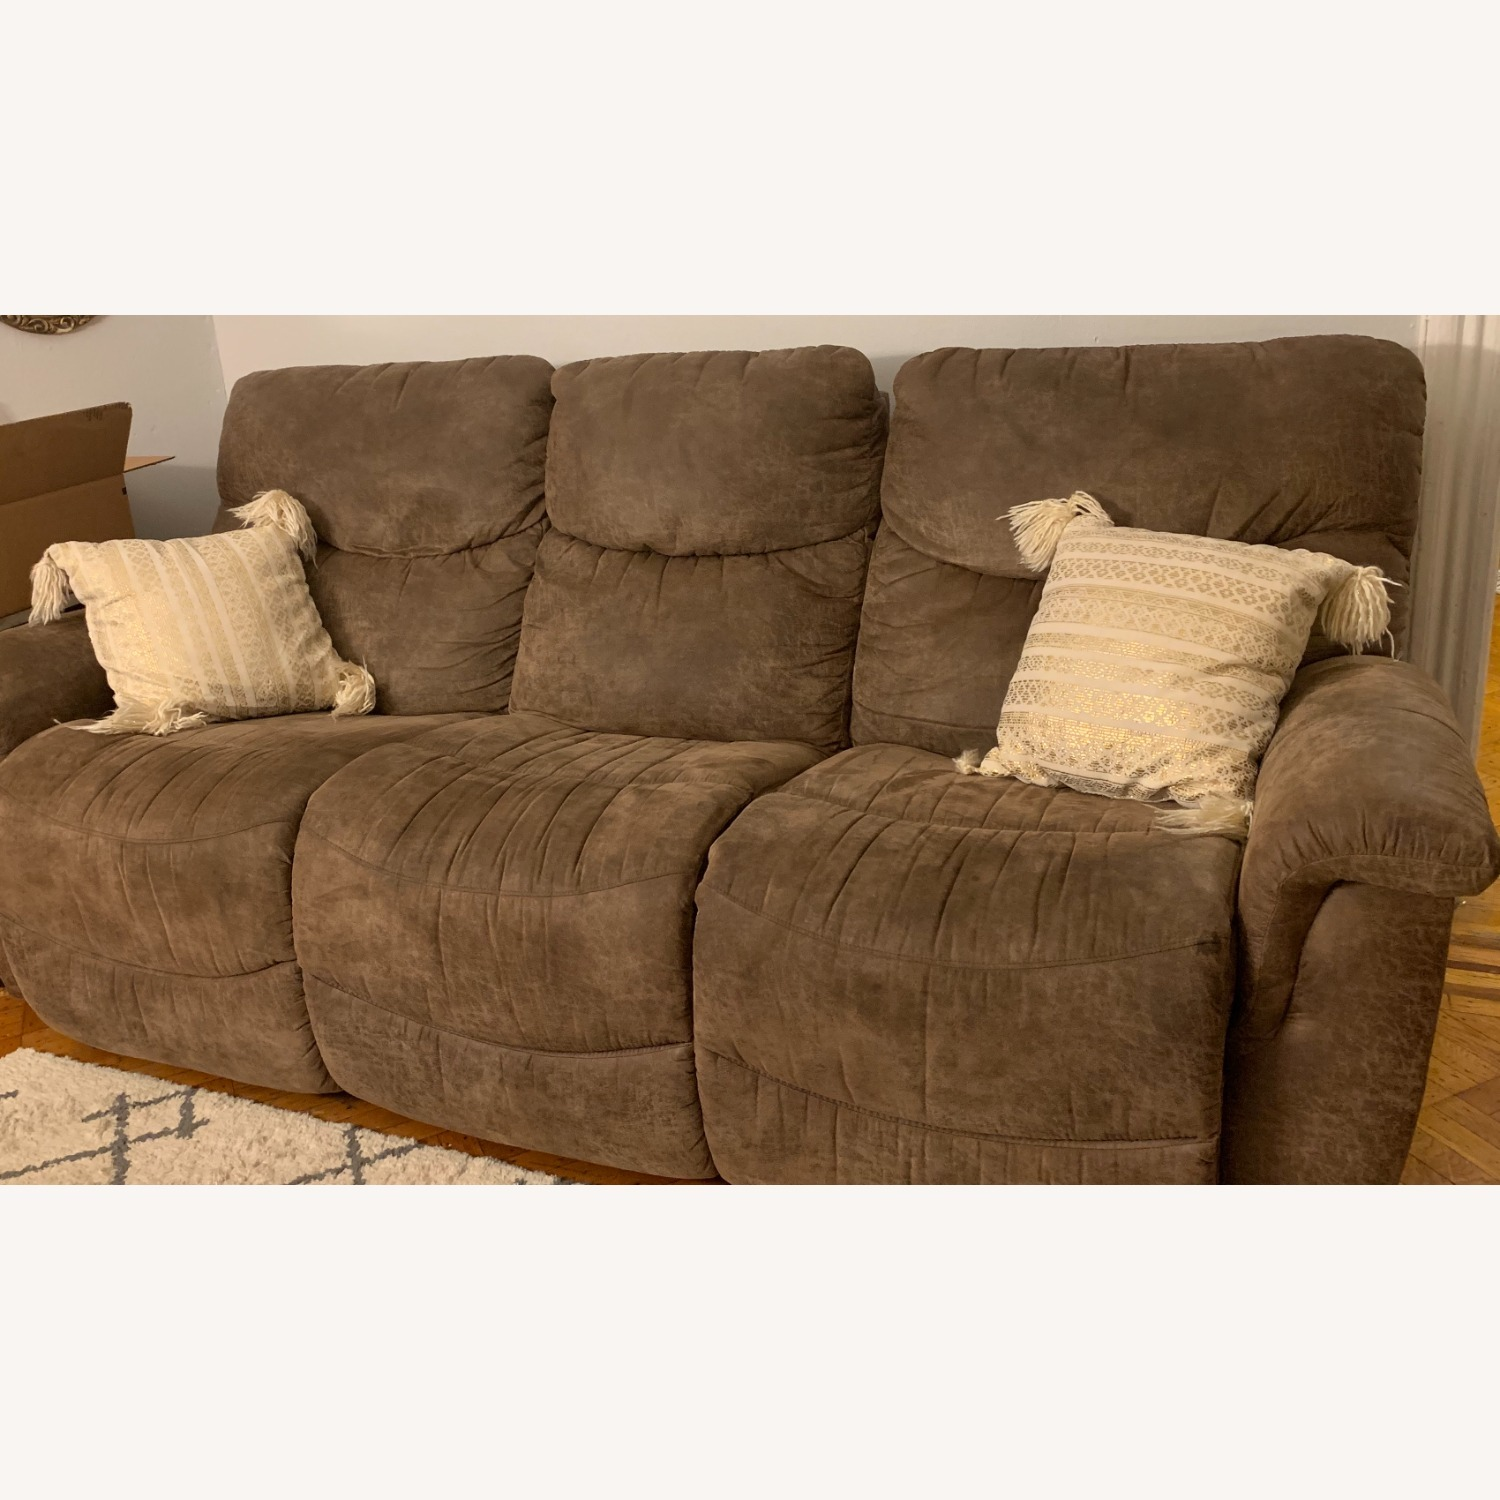 La-Z-Boy Ddual Reclining Couch - brown - image-1